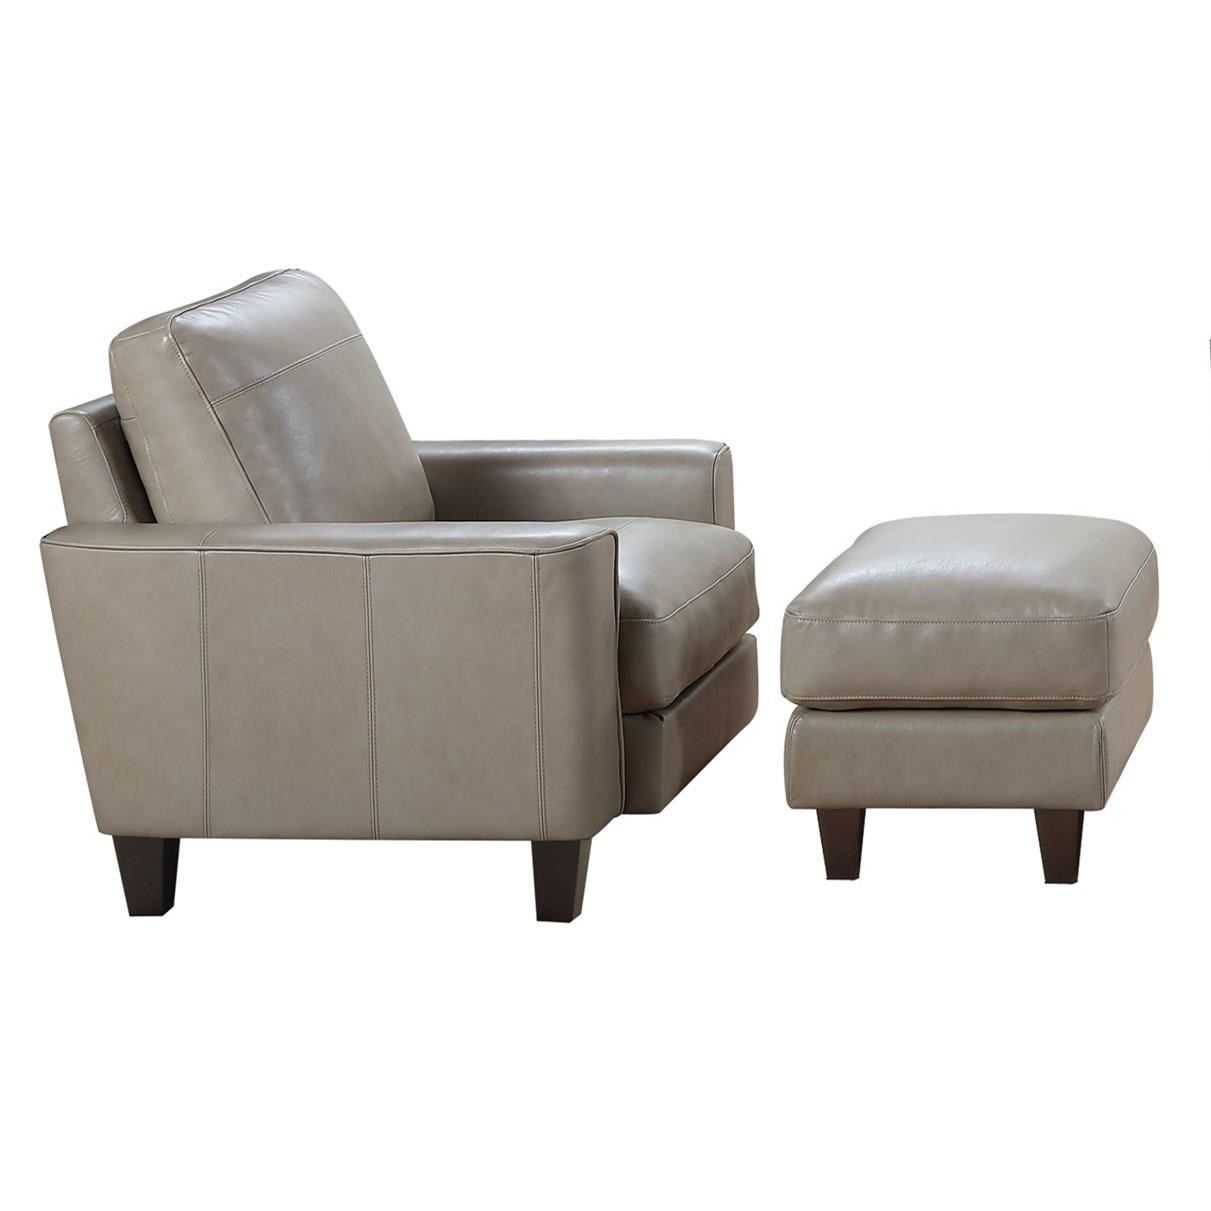 Chino Leather Chair and Ottoman Set at Rotmans